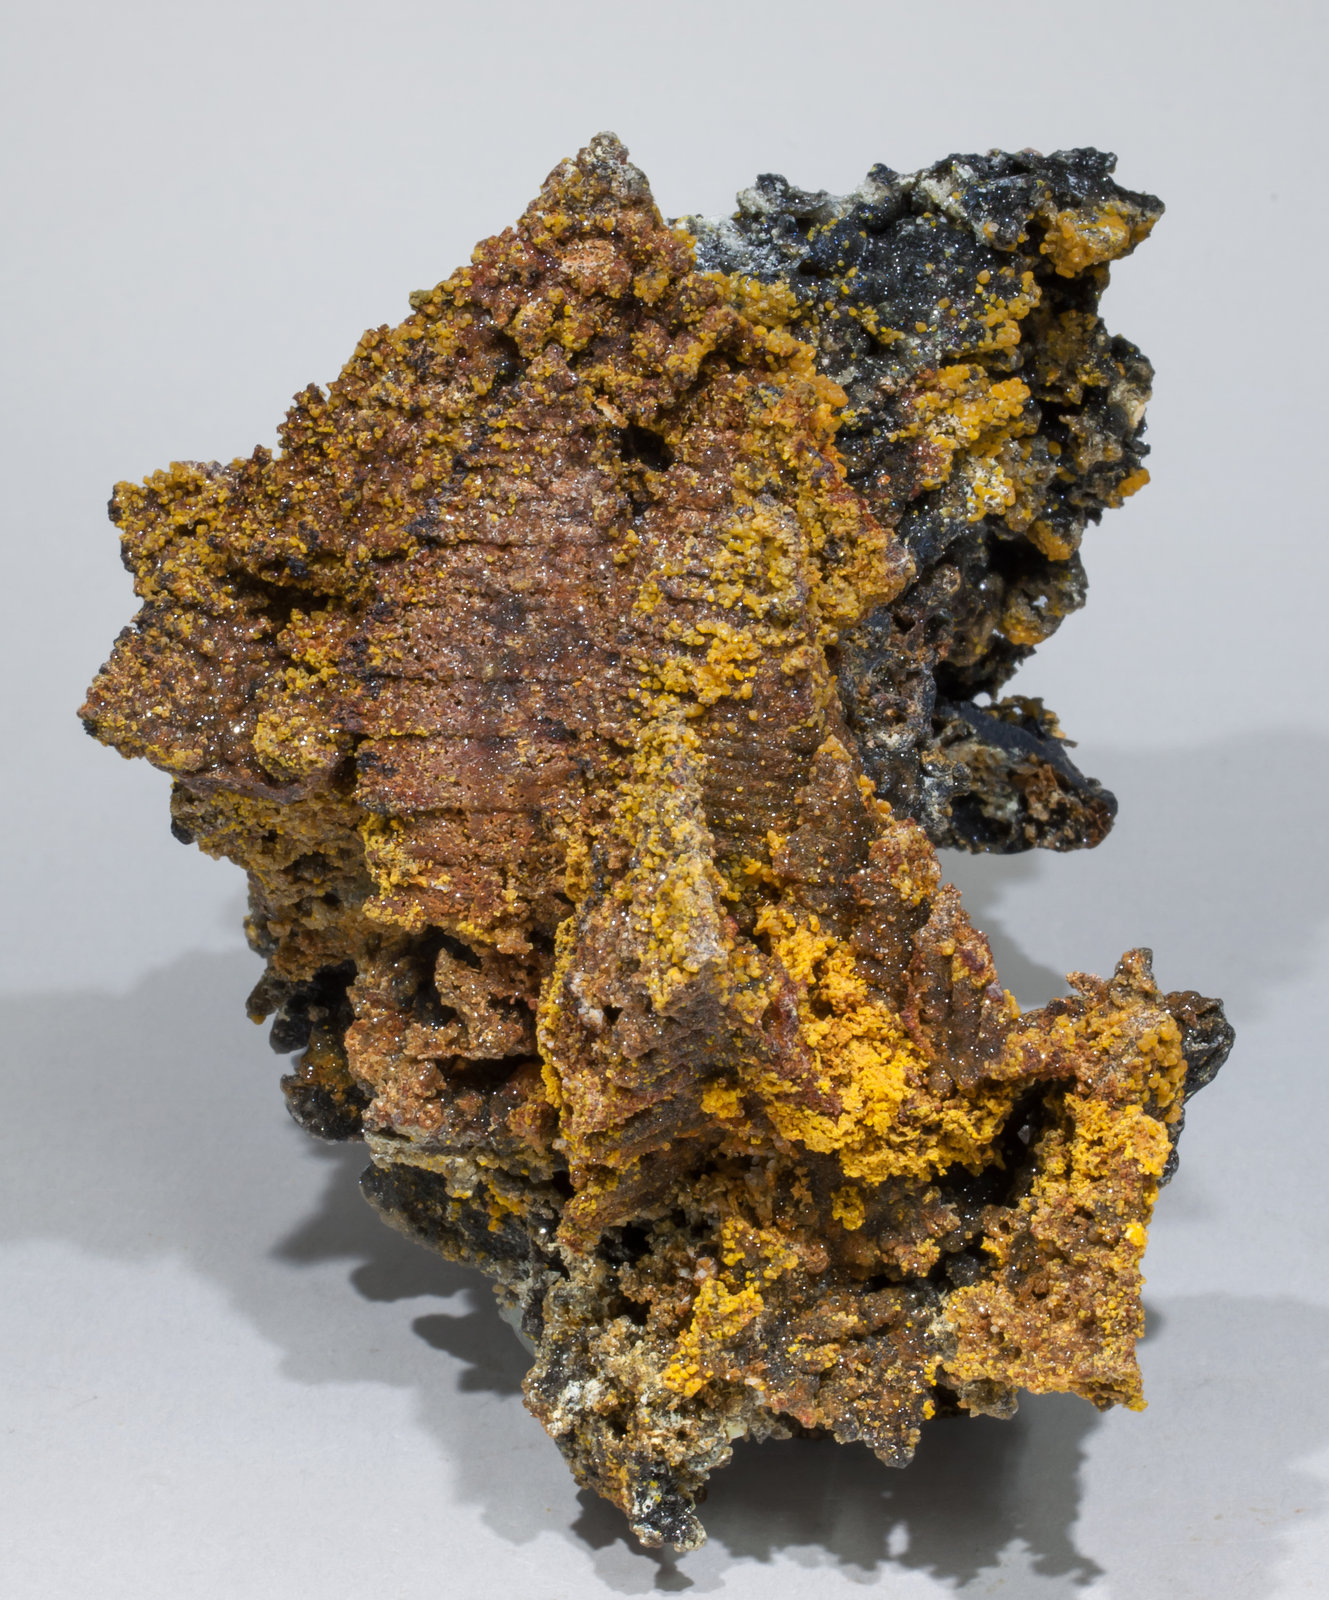 specimens/s_imagesAC6/Willemite-MC60AC6f.jpg